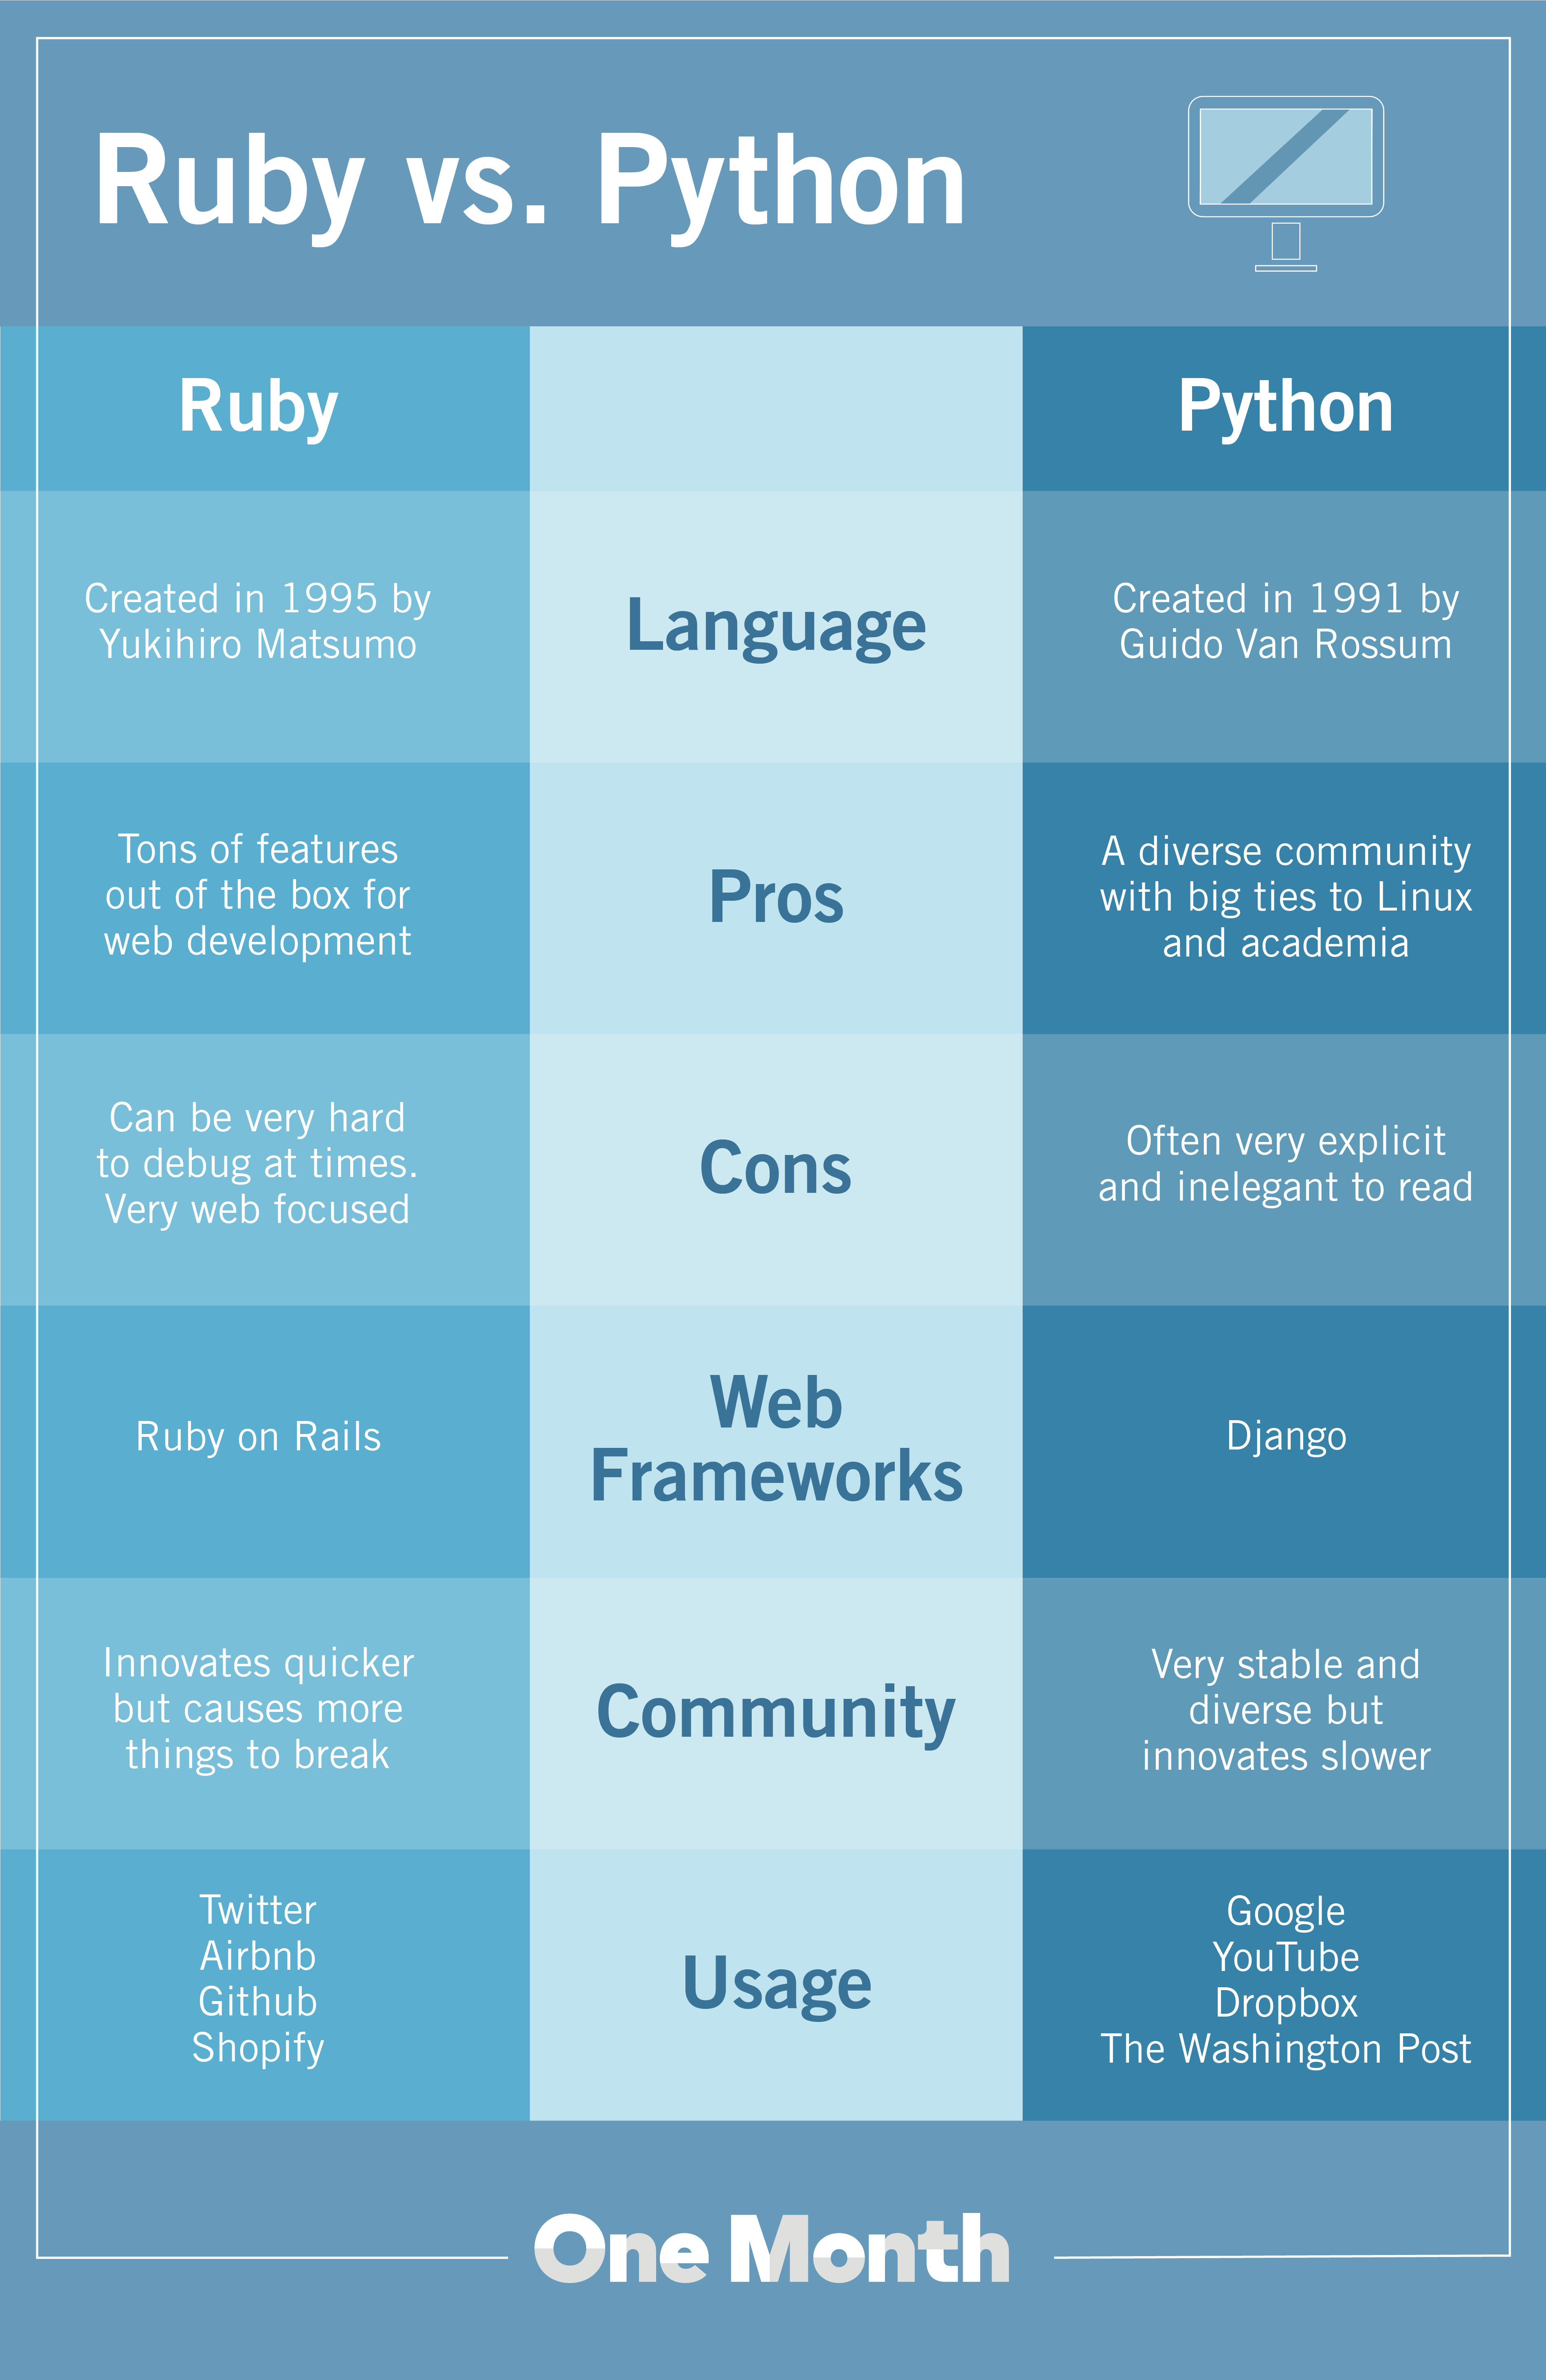 Ruby vs. Python What's the Difference?